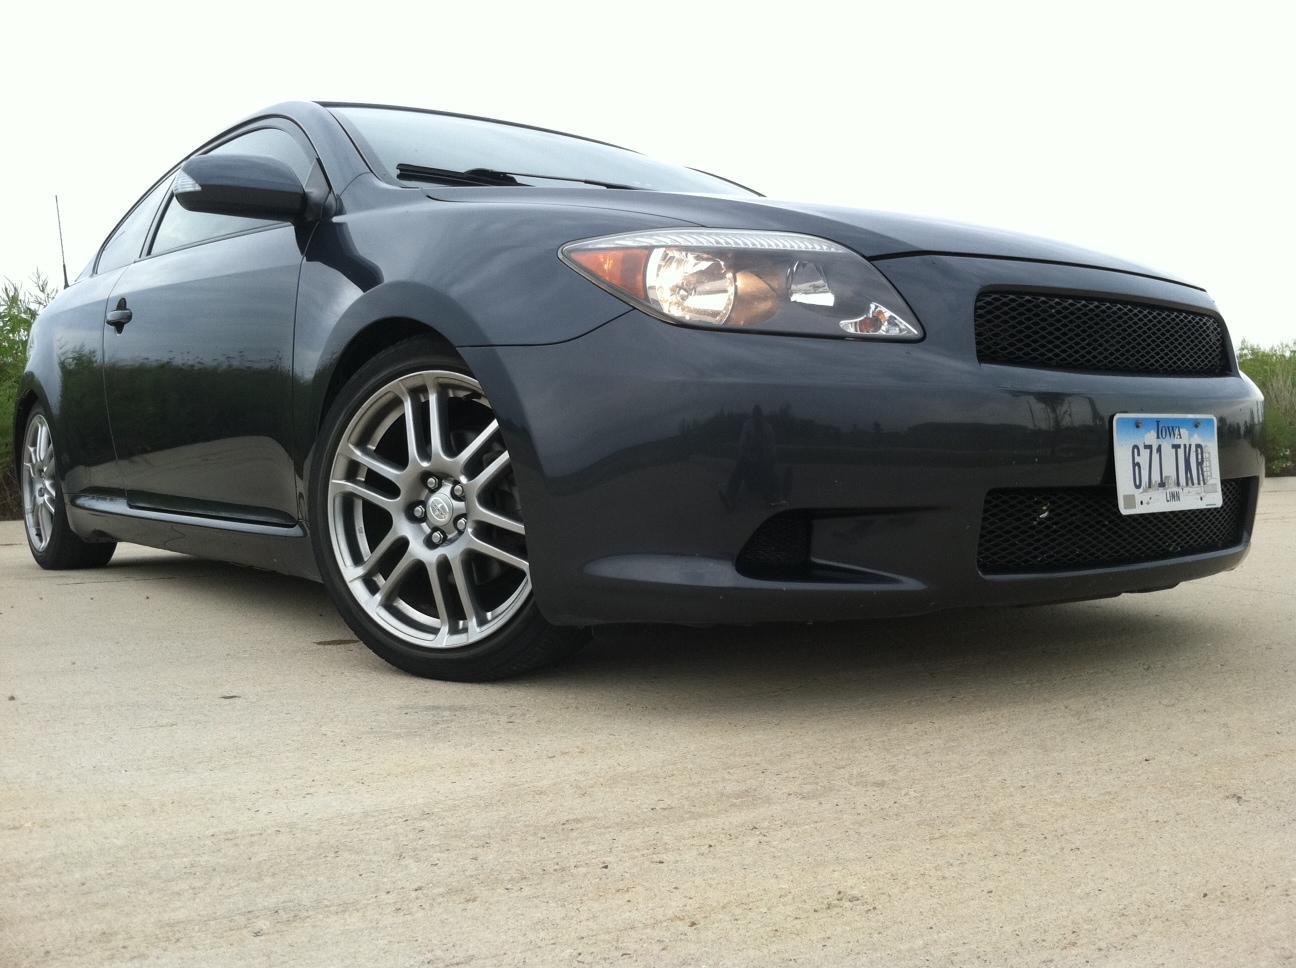 lancelot250's 2006 Scion tC